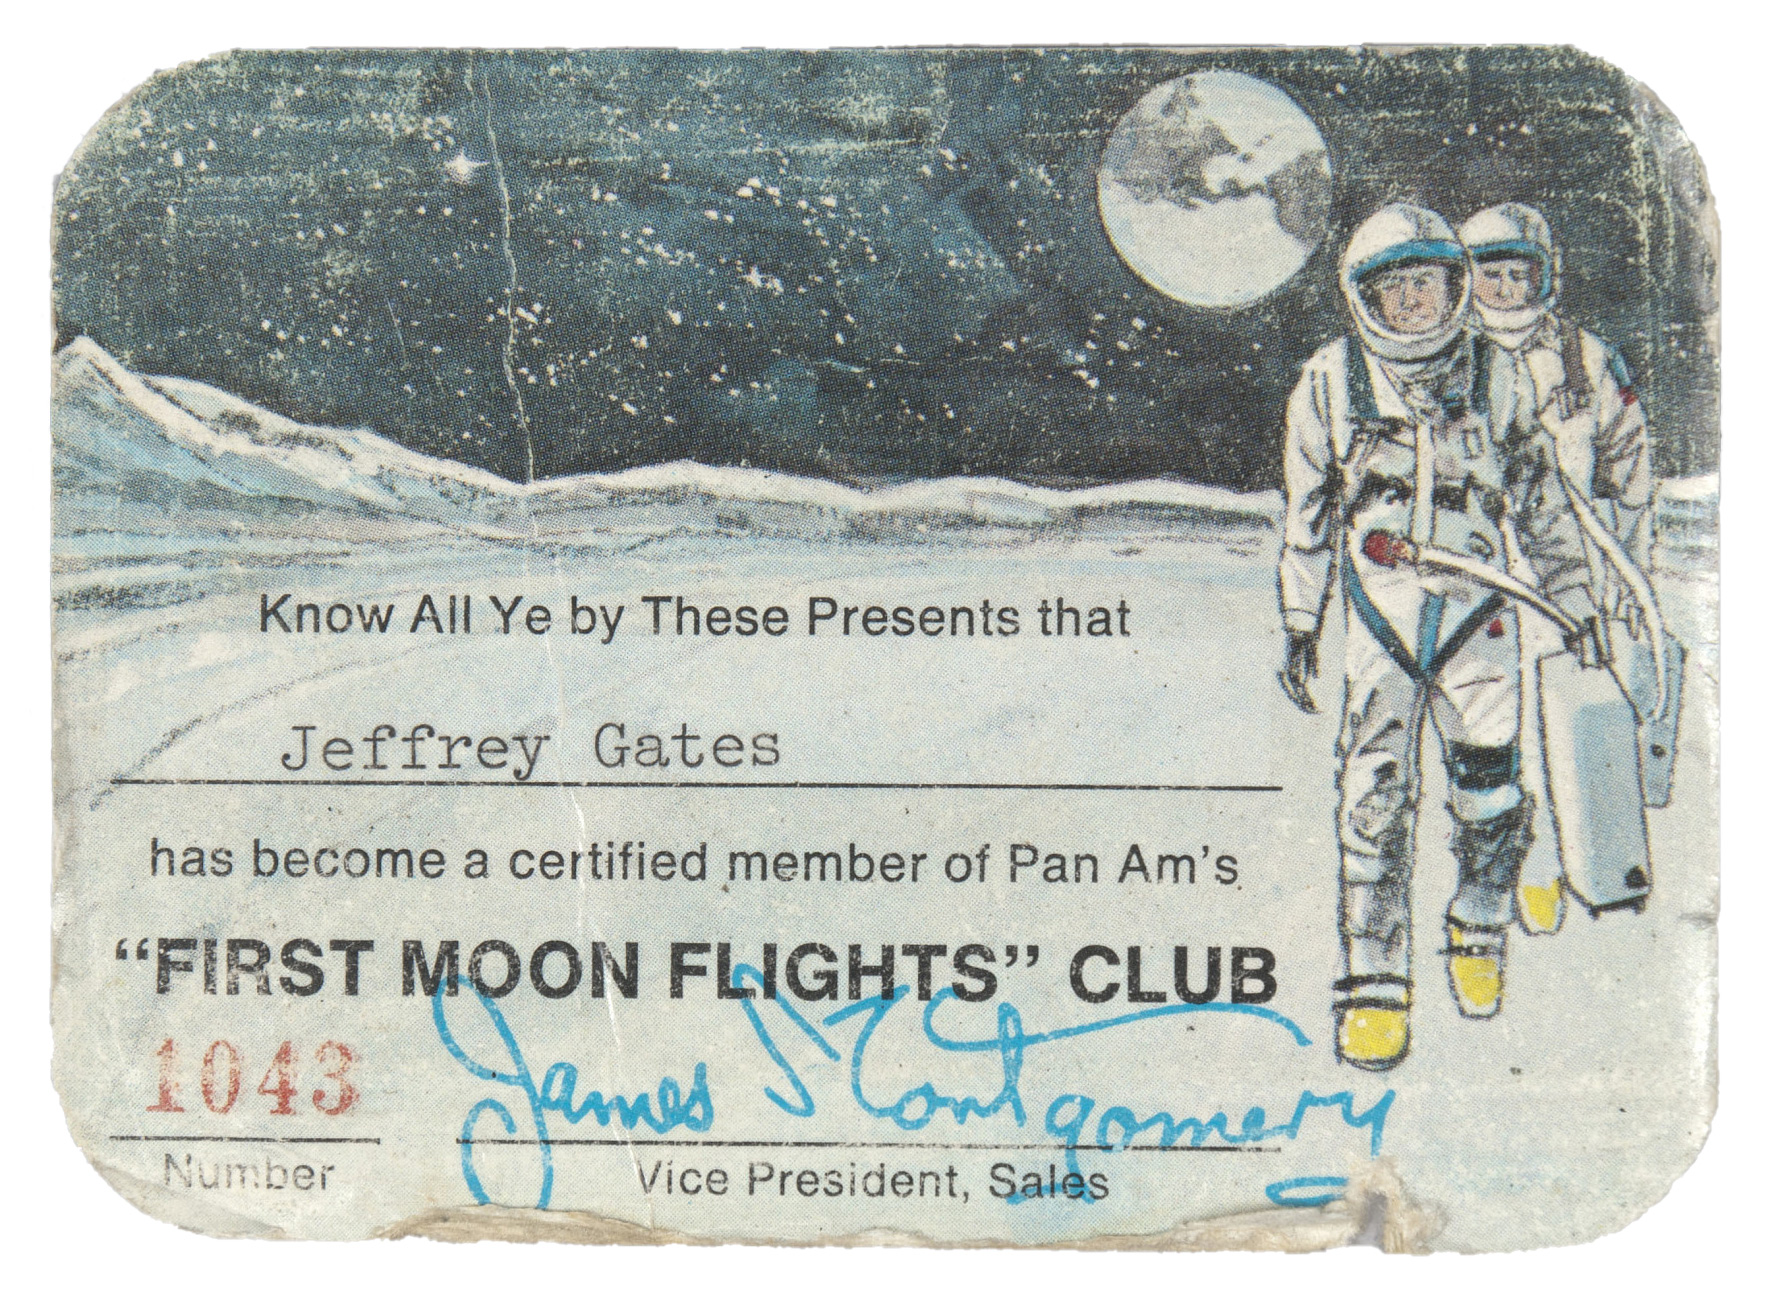 This Pan Am  First Moon Flights  Club card, number 1043, was issued by the airline to Jeffrey Gates in the late 1960s. Gates acquired the card (as well as reservations for himself and his wife-of-the-future) when he was 20 years old.